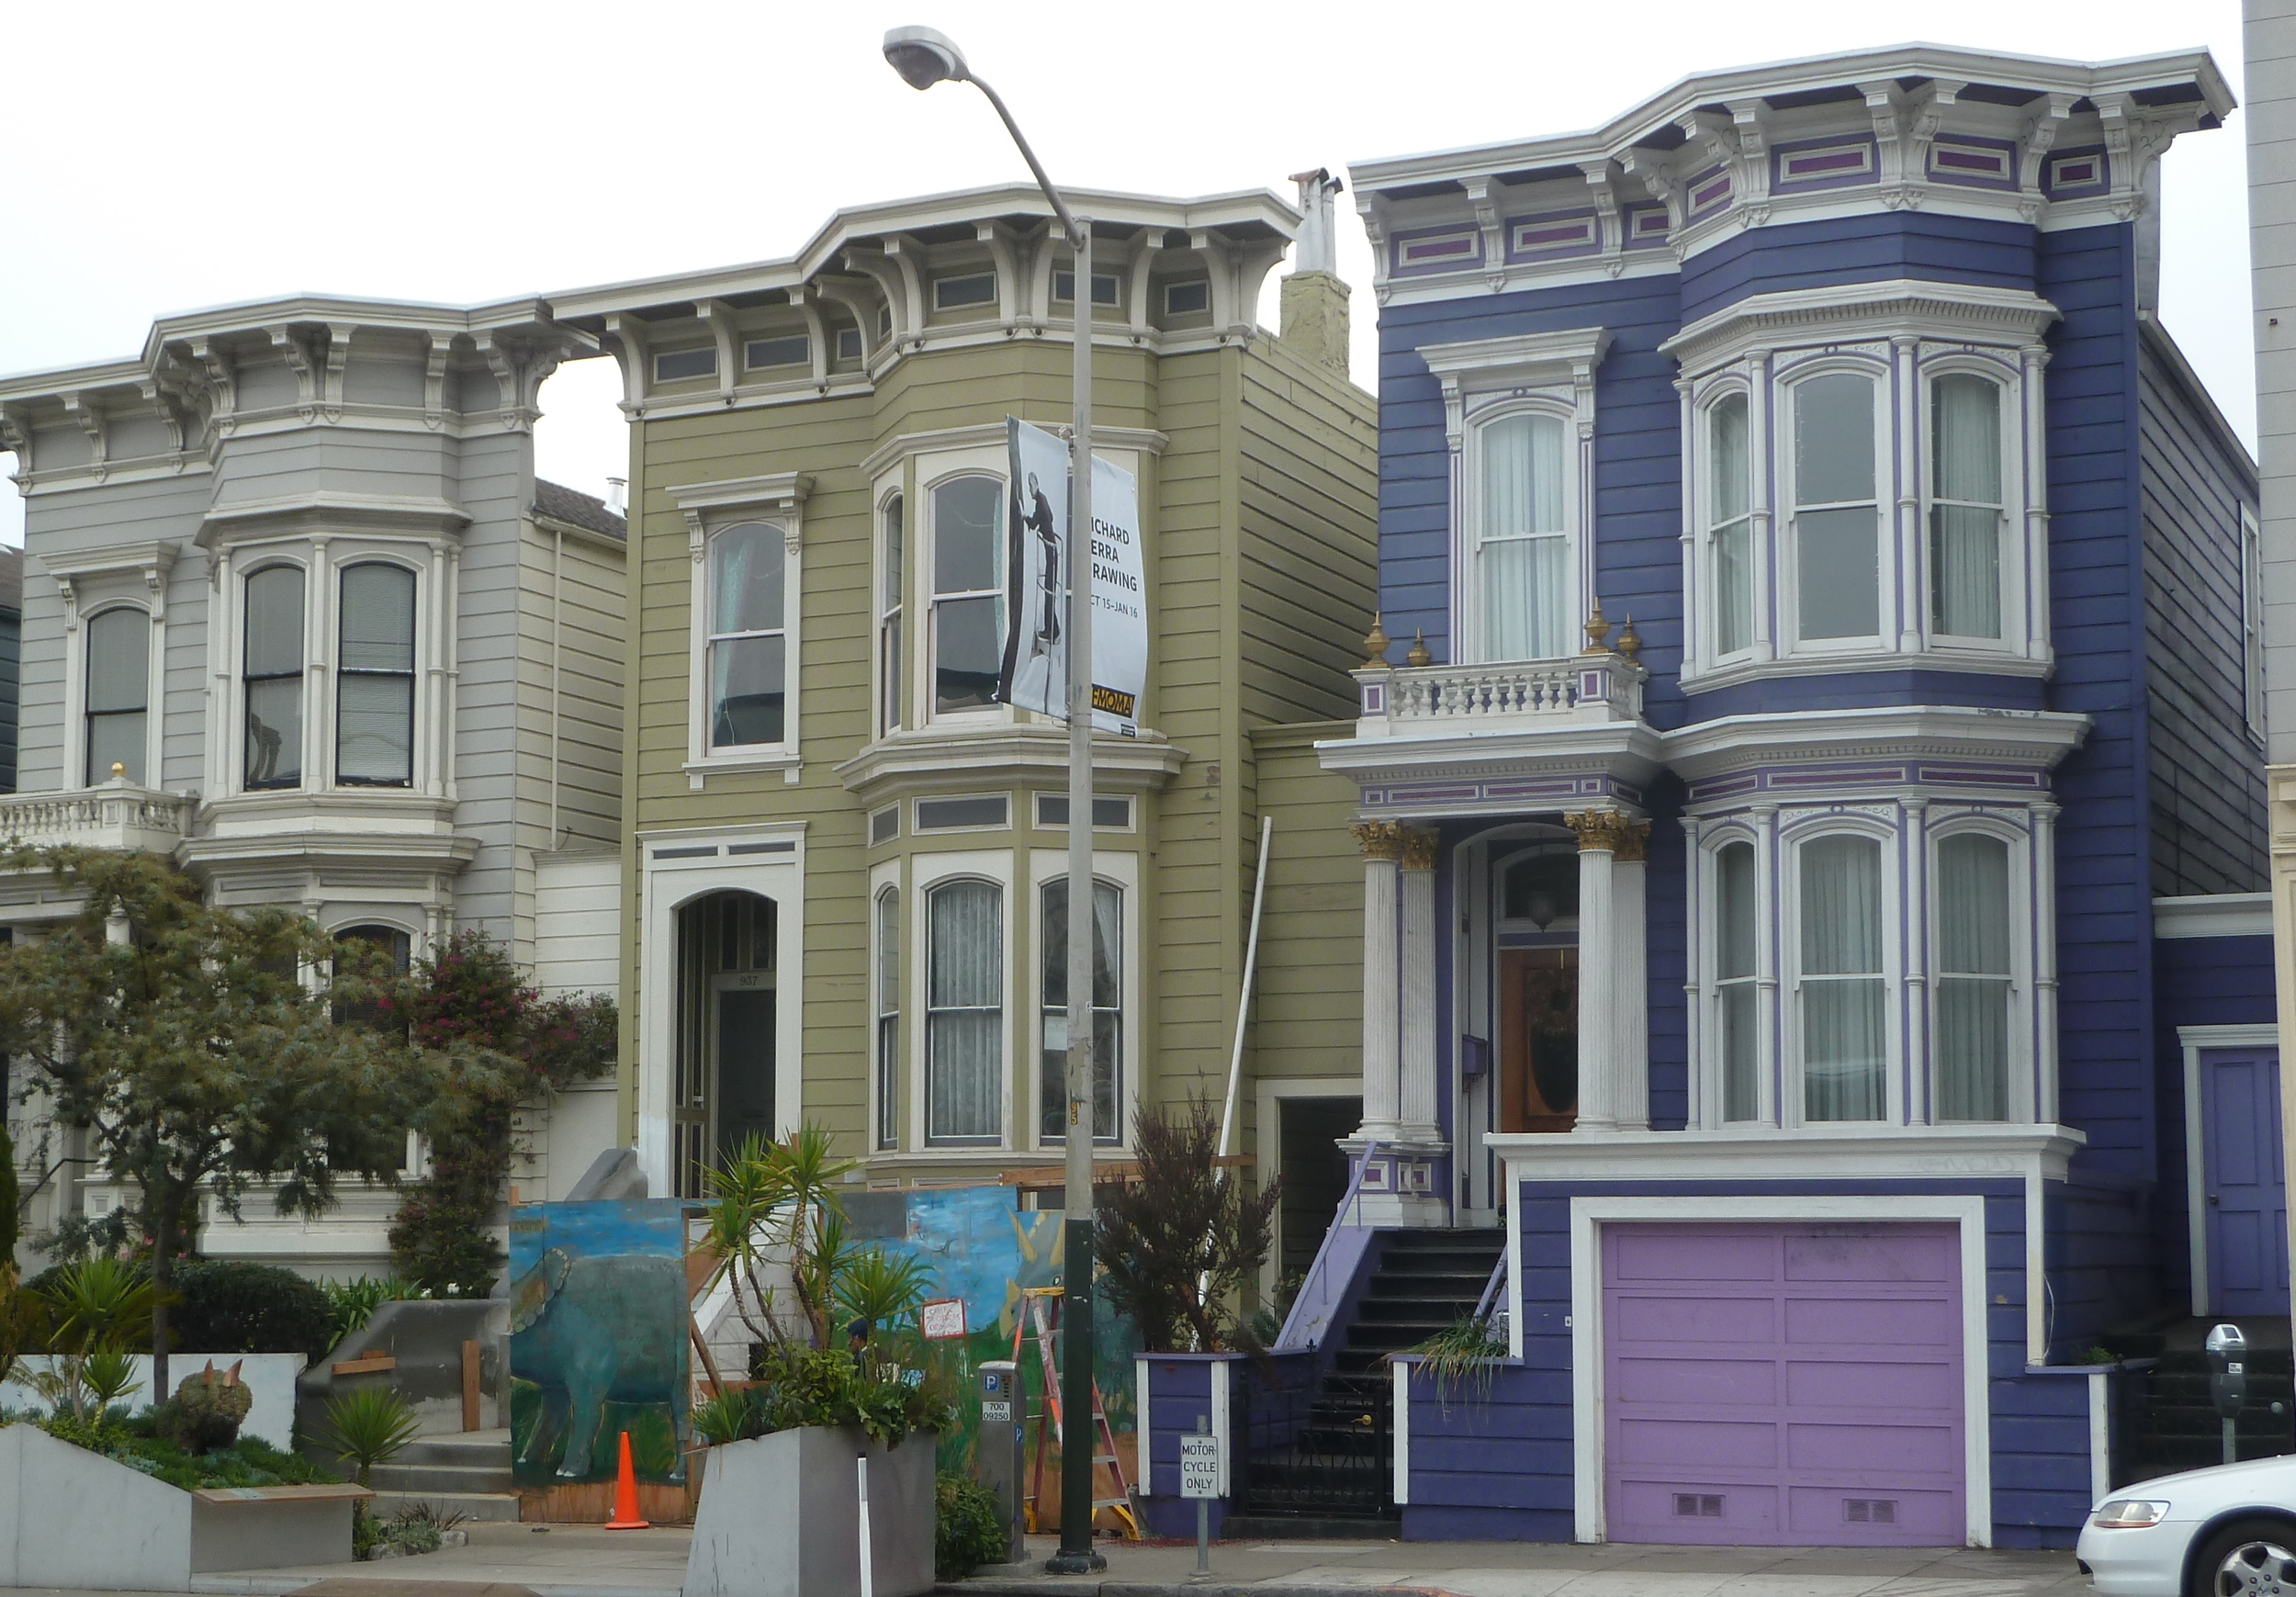 A row of 1880 Italianates built by TREA in the Mission.